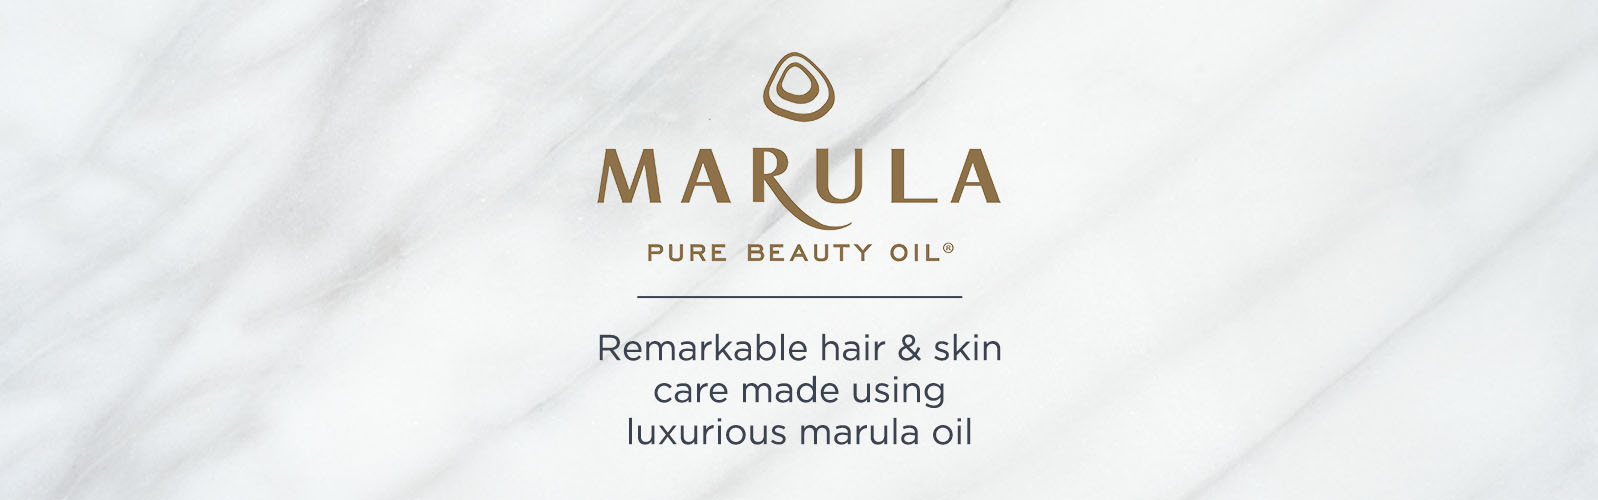 Marula Pure Beauty Oil - Remarkable hair & skin care made using luxurious marula oil